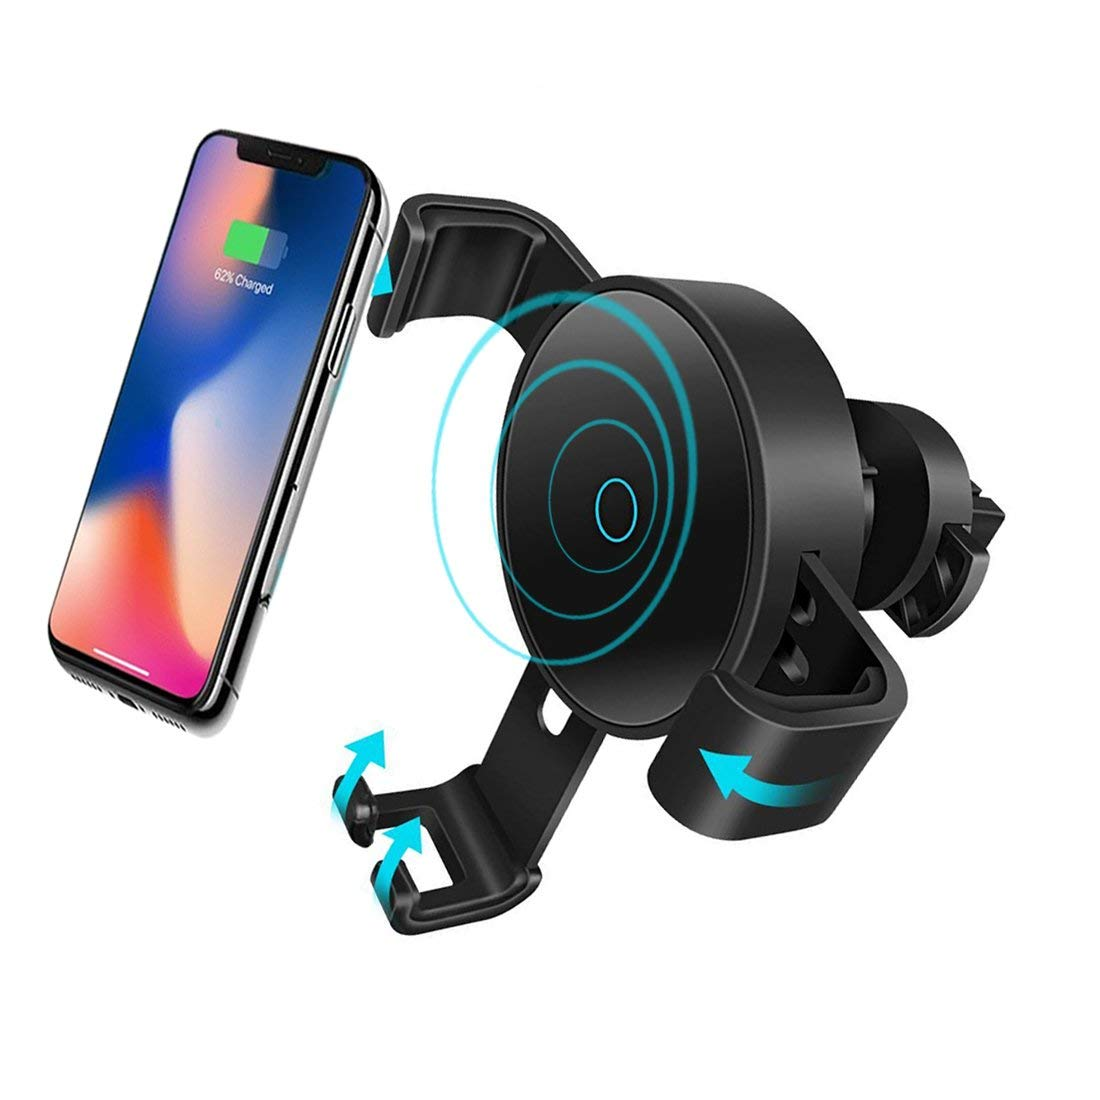 Newgam Wireless Car Charger, Qi Wireless Charger Car Mount, Fast Charging Compatible Samsung Galaxy S9/S9 Plus/S8/S8+/iPhone X/8/8 Plus, Air Vent Car Charger Mount Compatible All Qi Enabled Devices